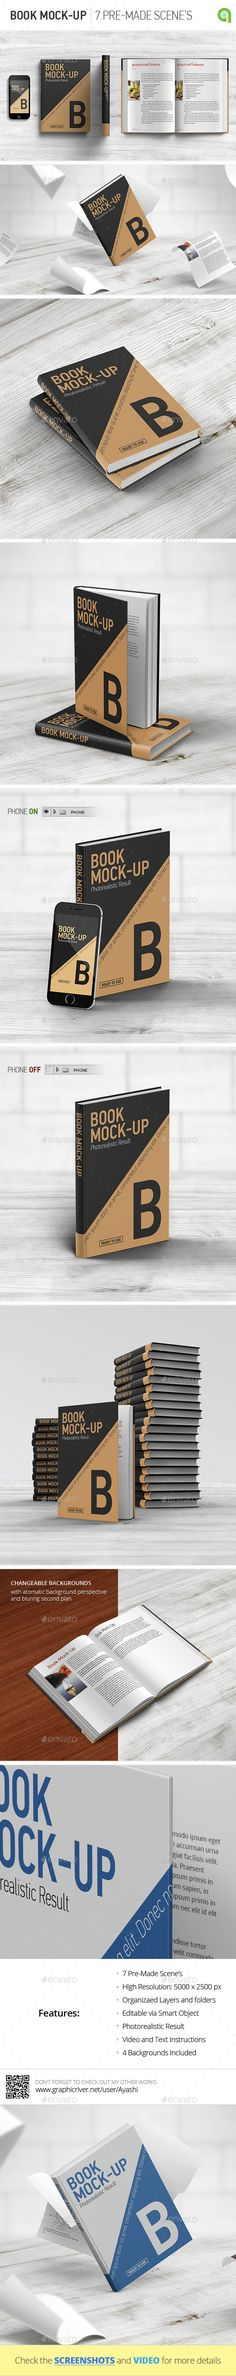 Book MockUp — Photoshop PSD #showcase #hard cover • Available here → https://graphicriver.net/item/book-mockup/8954816?ref=pxcr